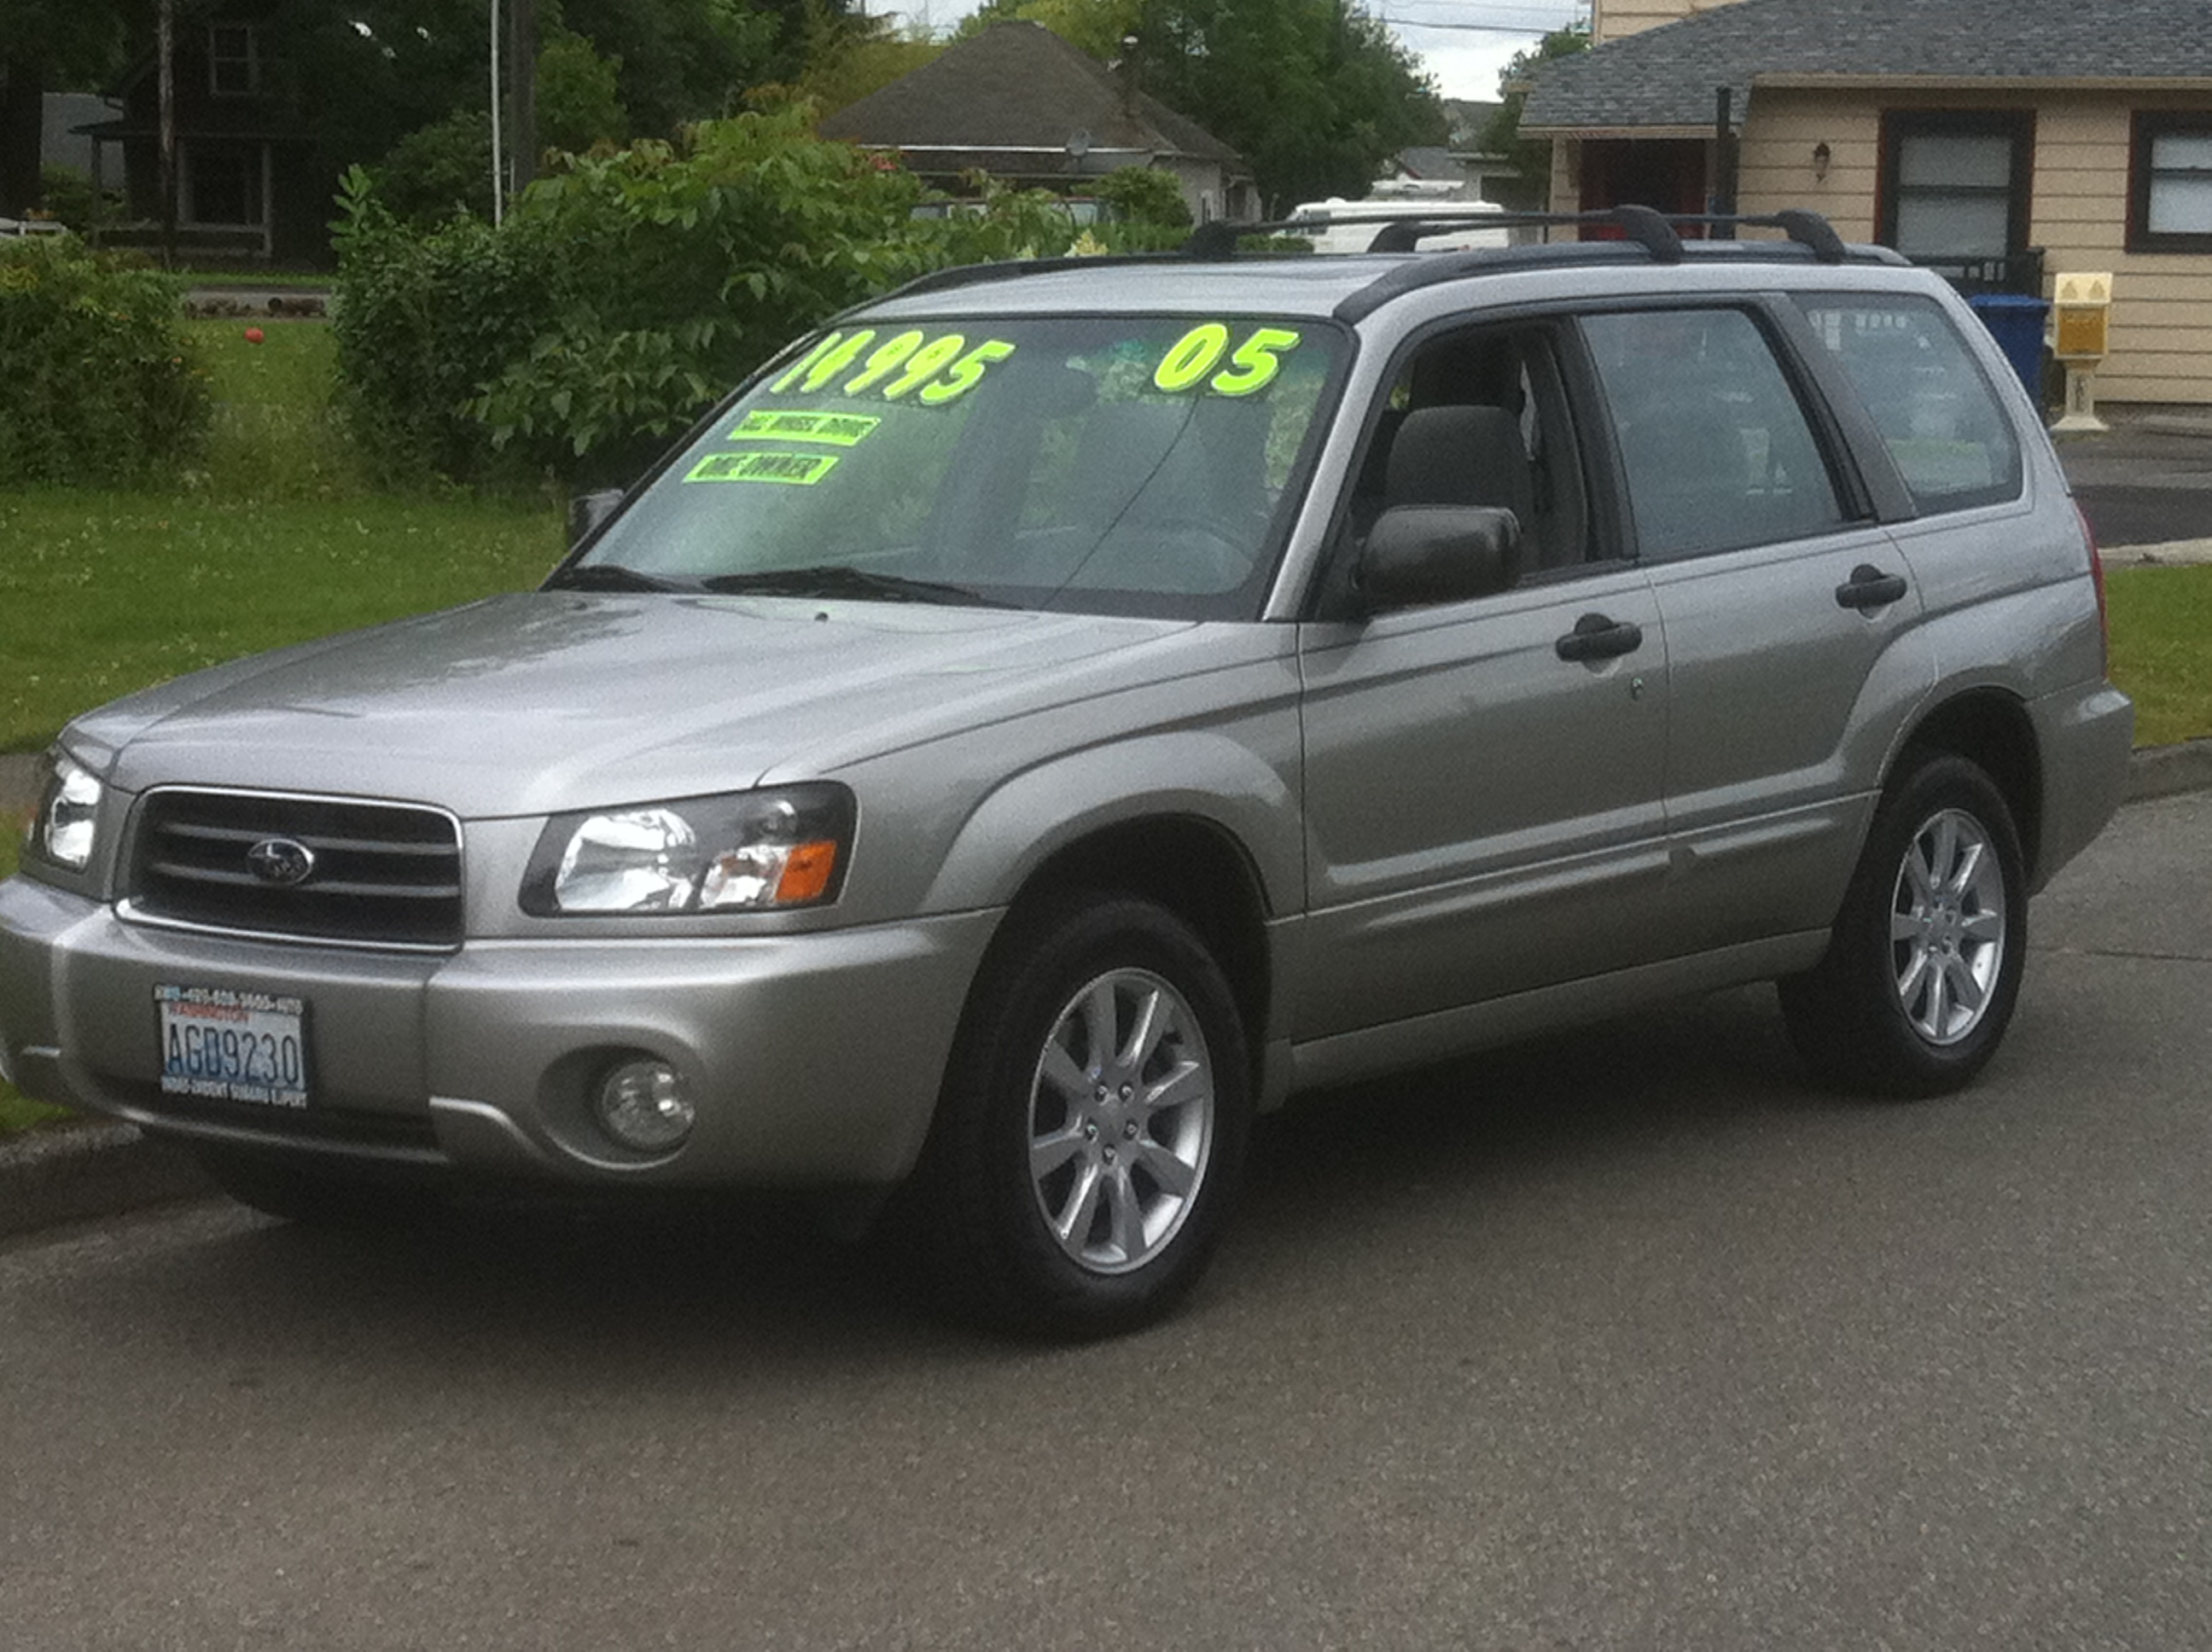 2005 subaru forester owners manual download